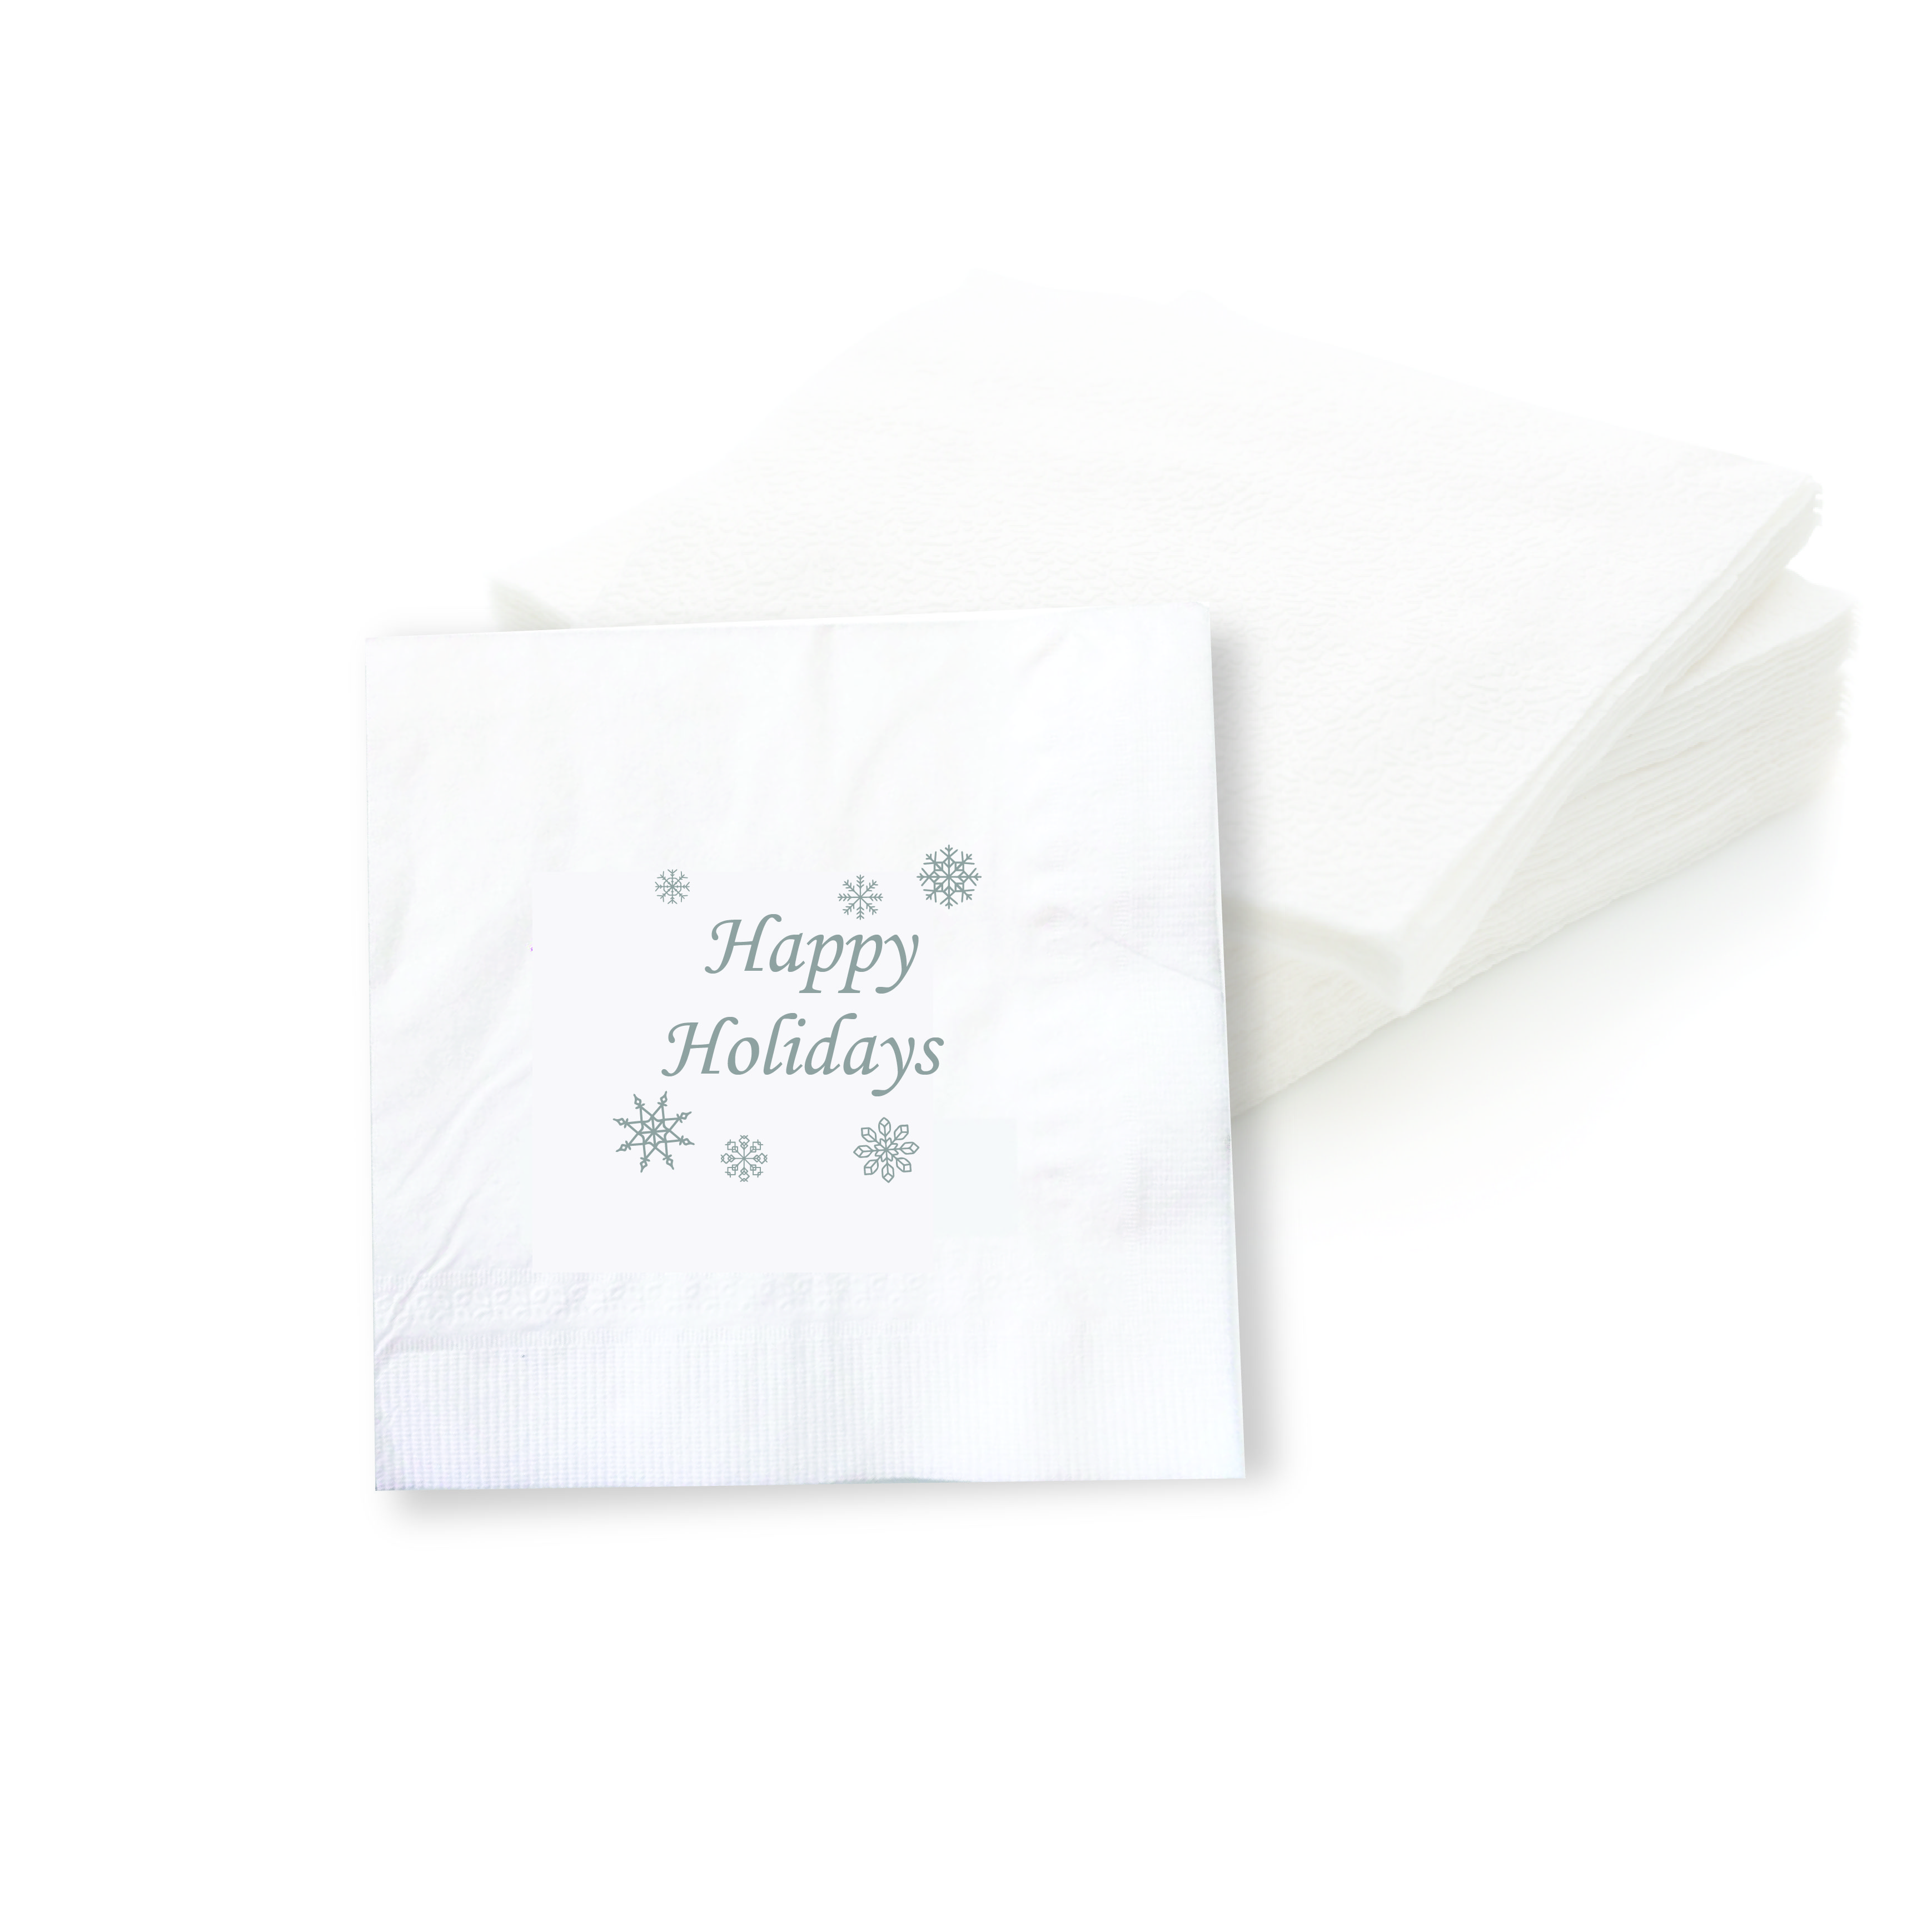 Happy Holidays Cocktail Napkins (Set of 50 Pieces)